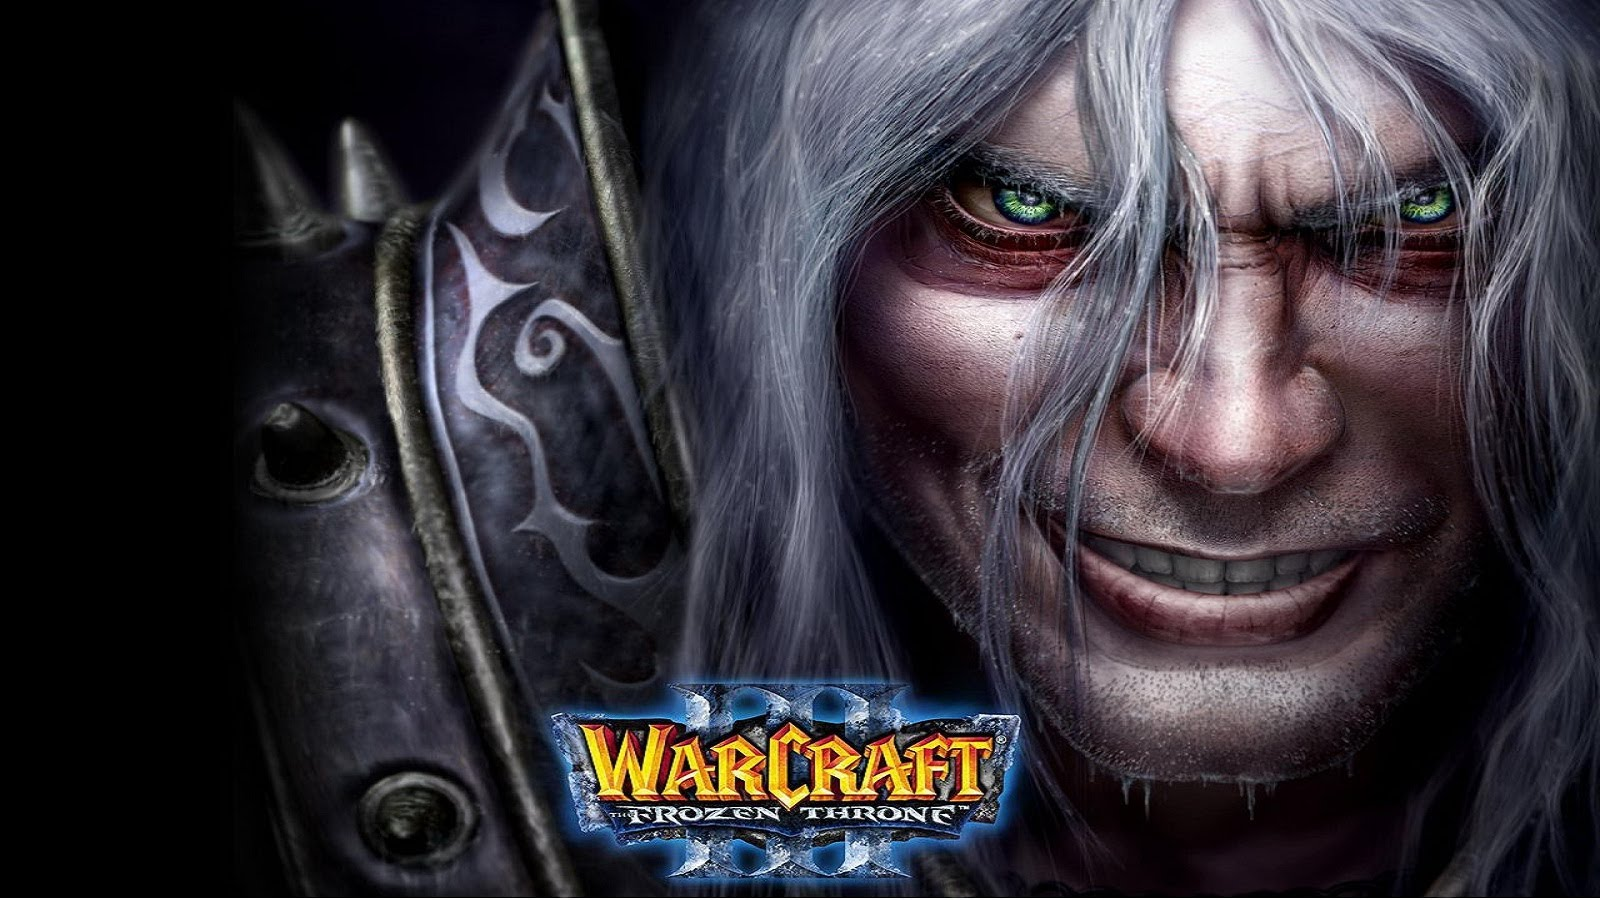 Warcraft 3 frozen throne orc scenario erotica scene